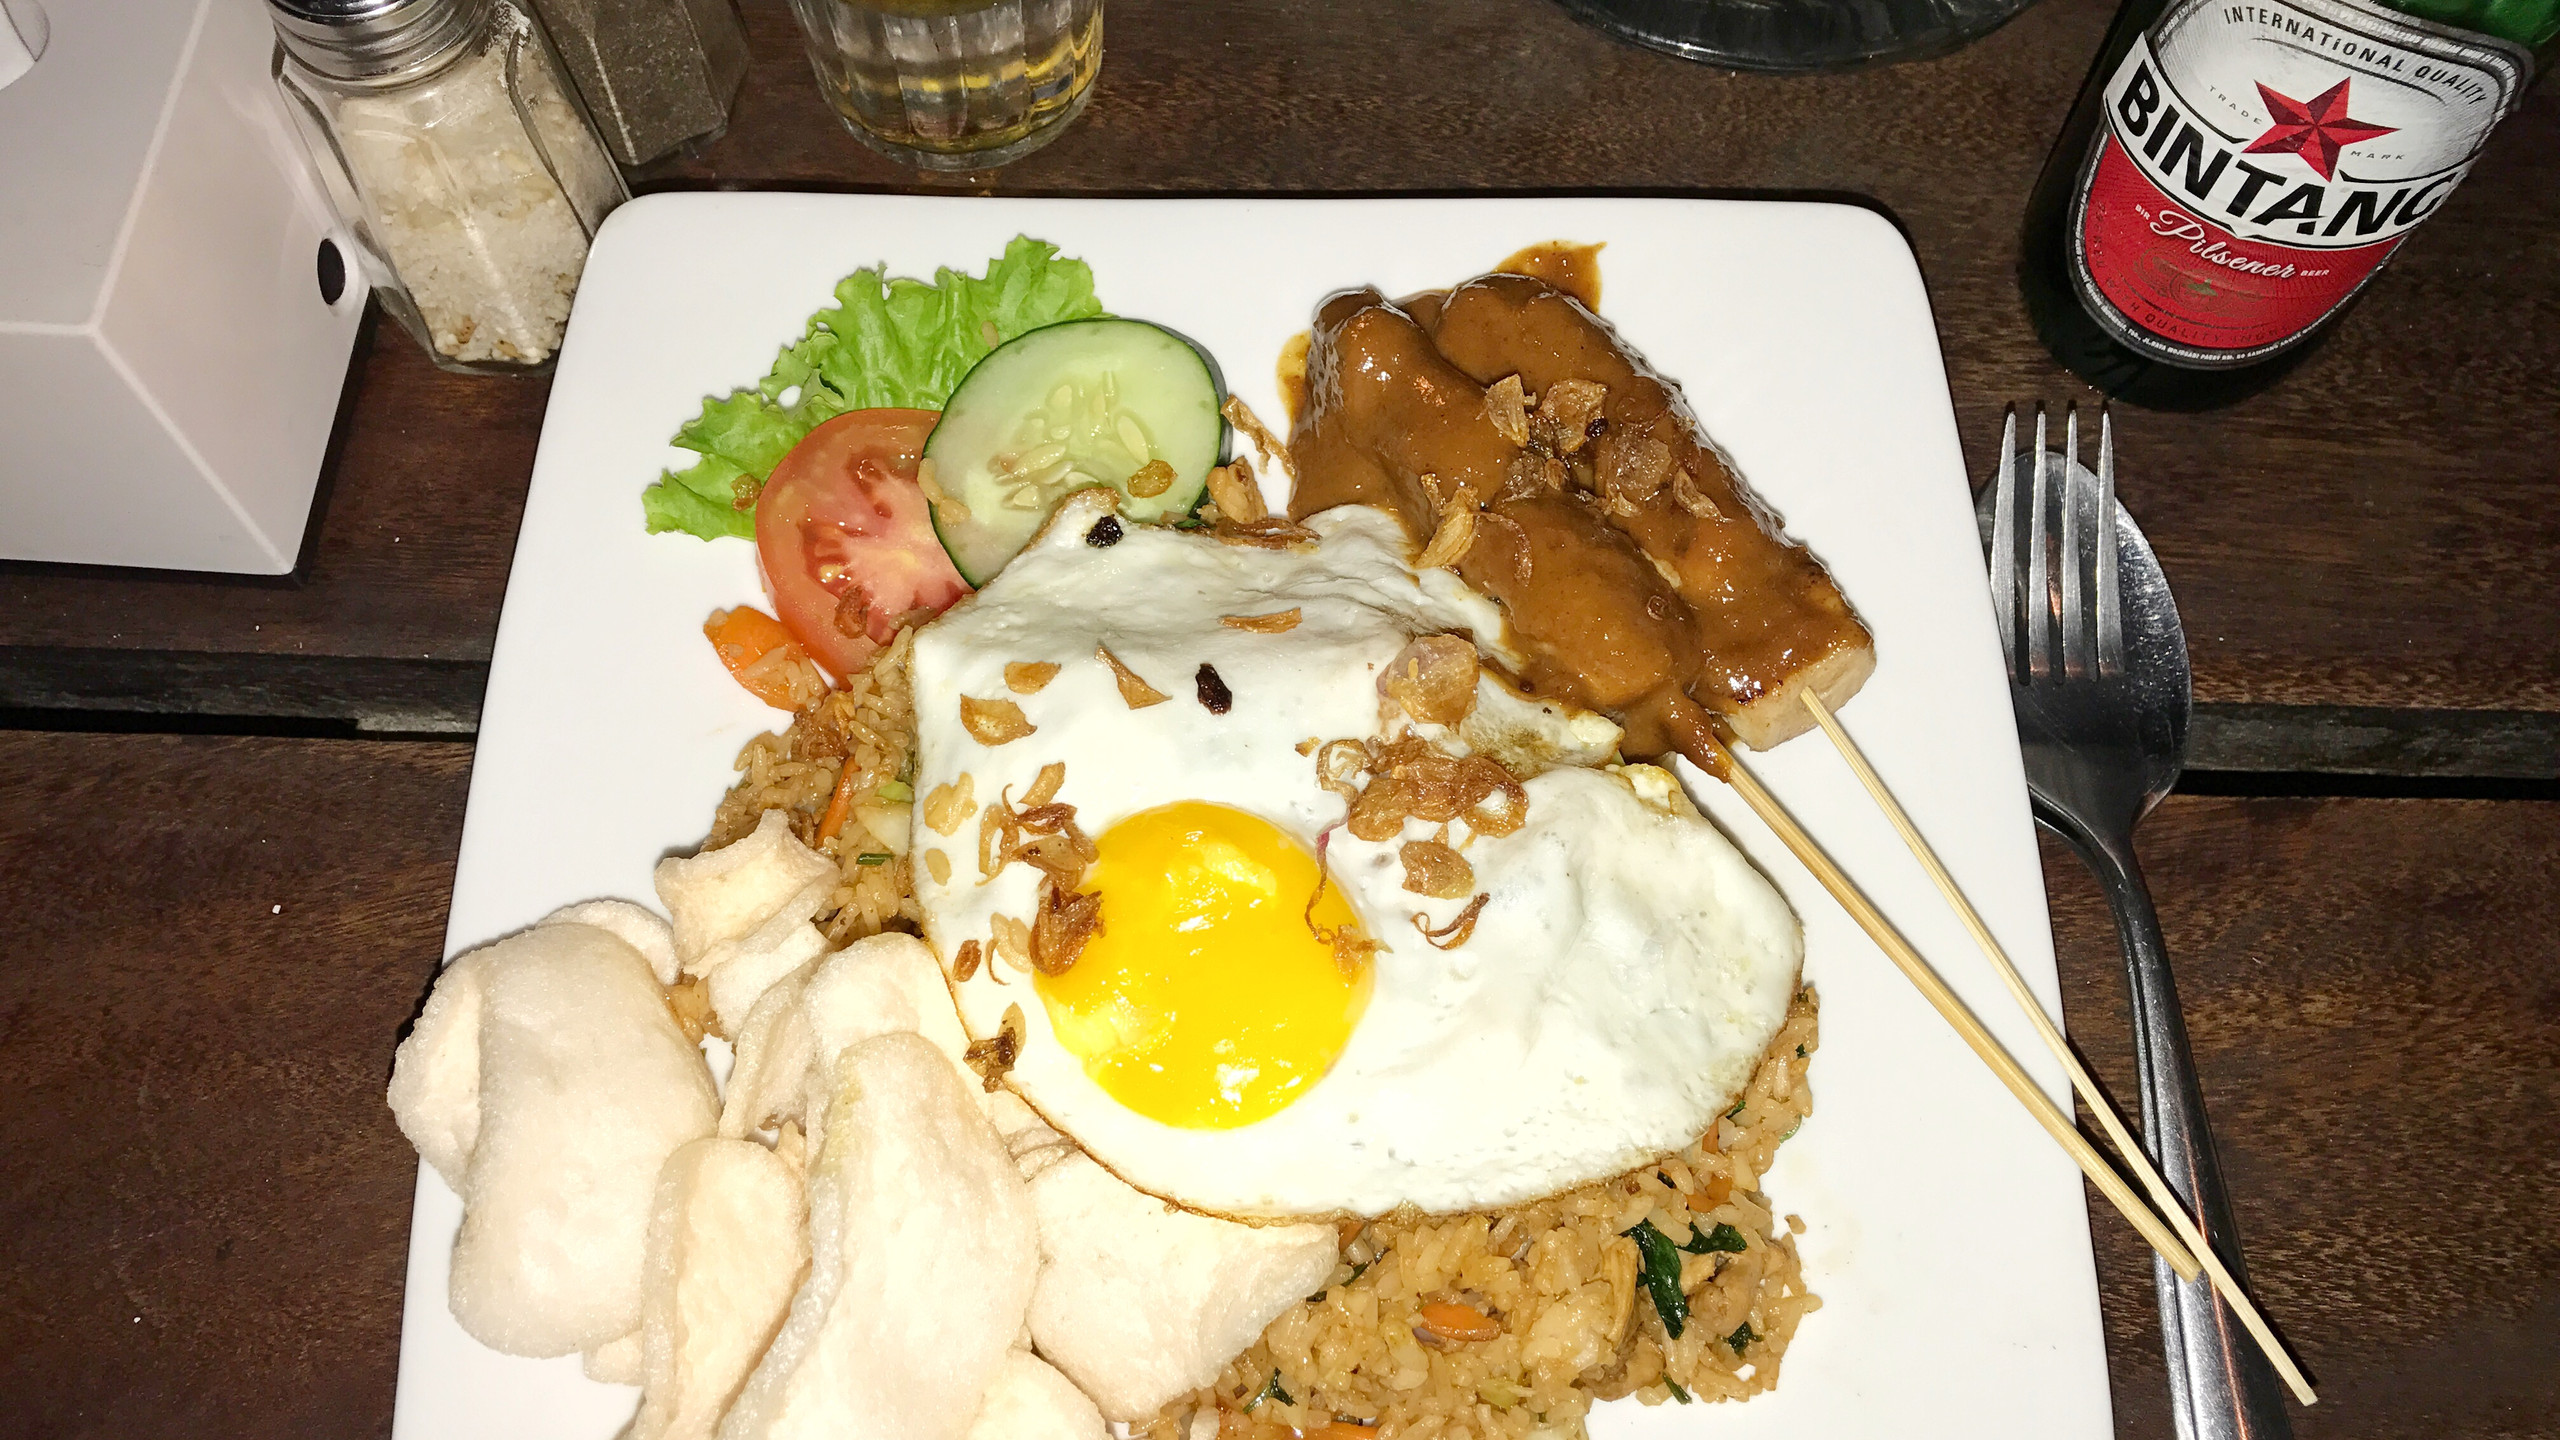 Nasi Goreng is a common dish consisting of stir fried rice, meat and usually an egg!